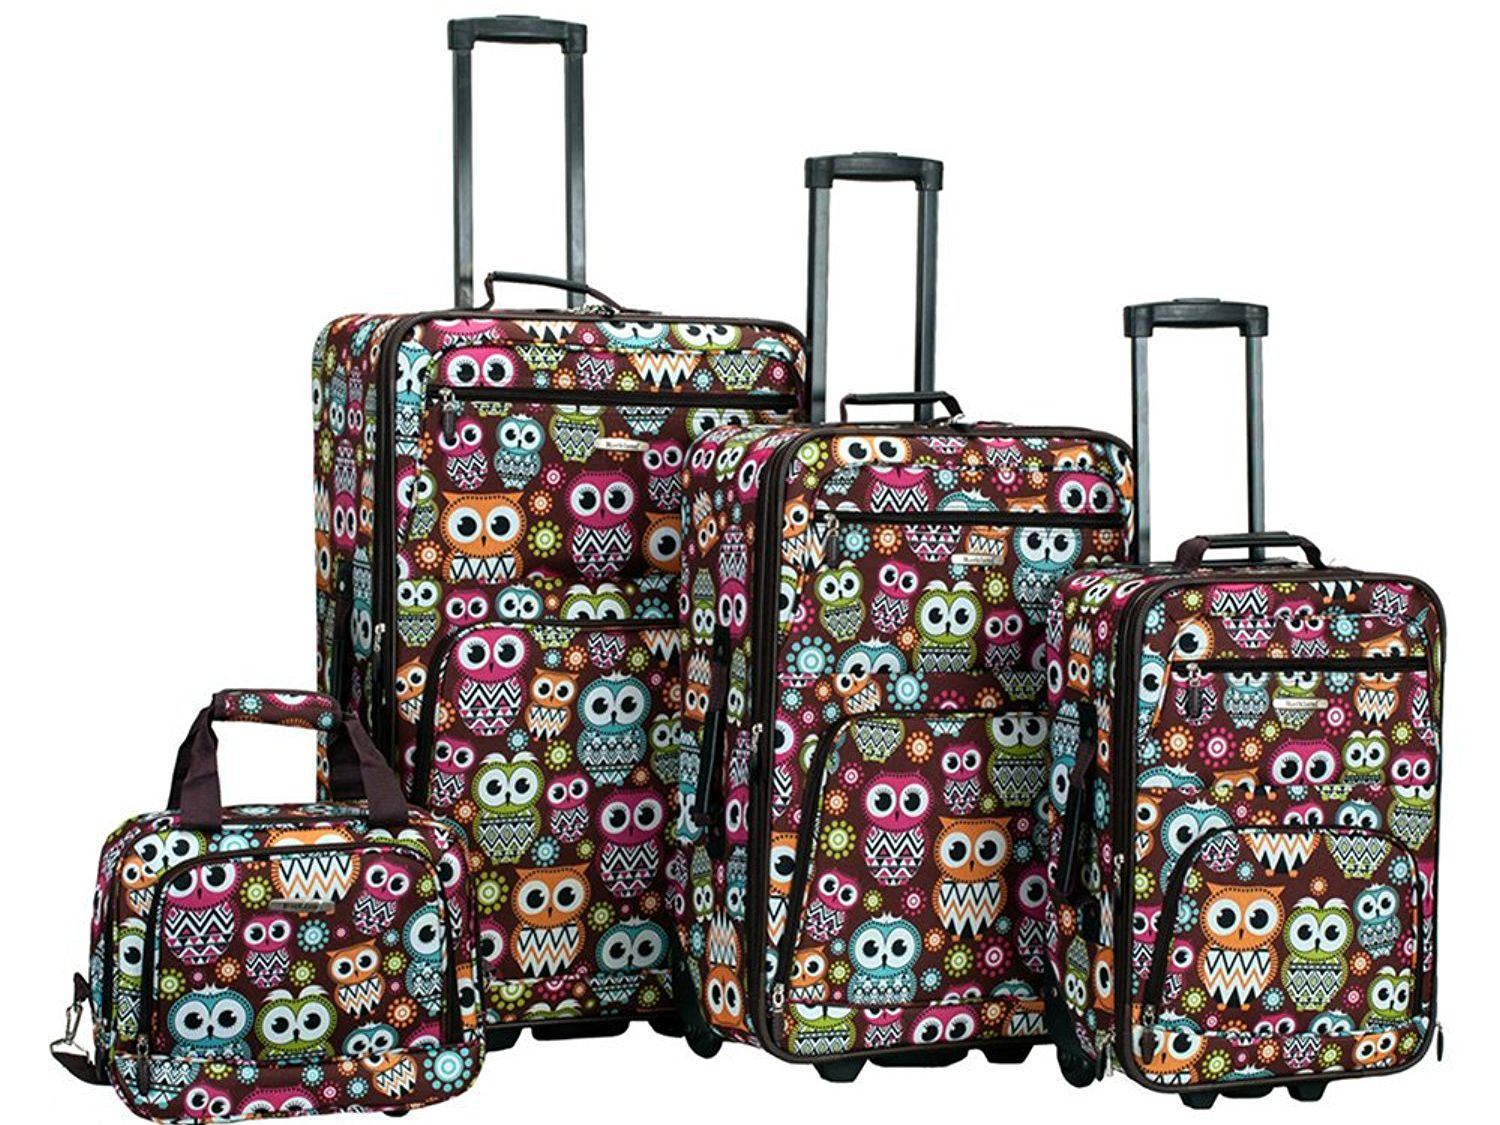 ebcb9034a485 The 8 Best Rockland Luggage Items of 2019